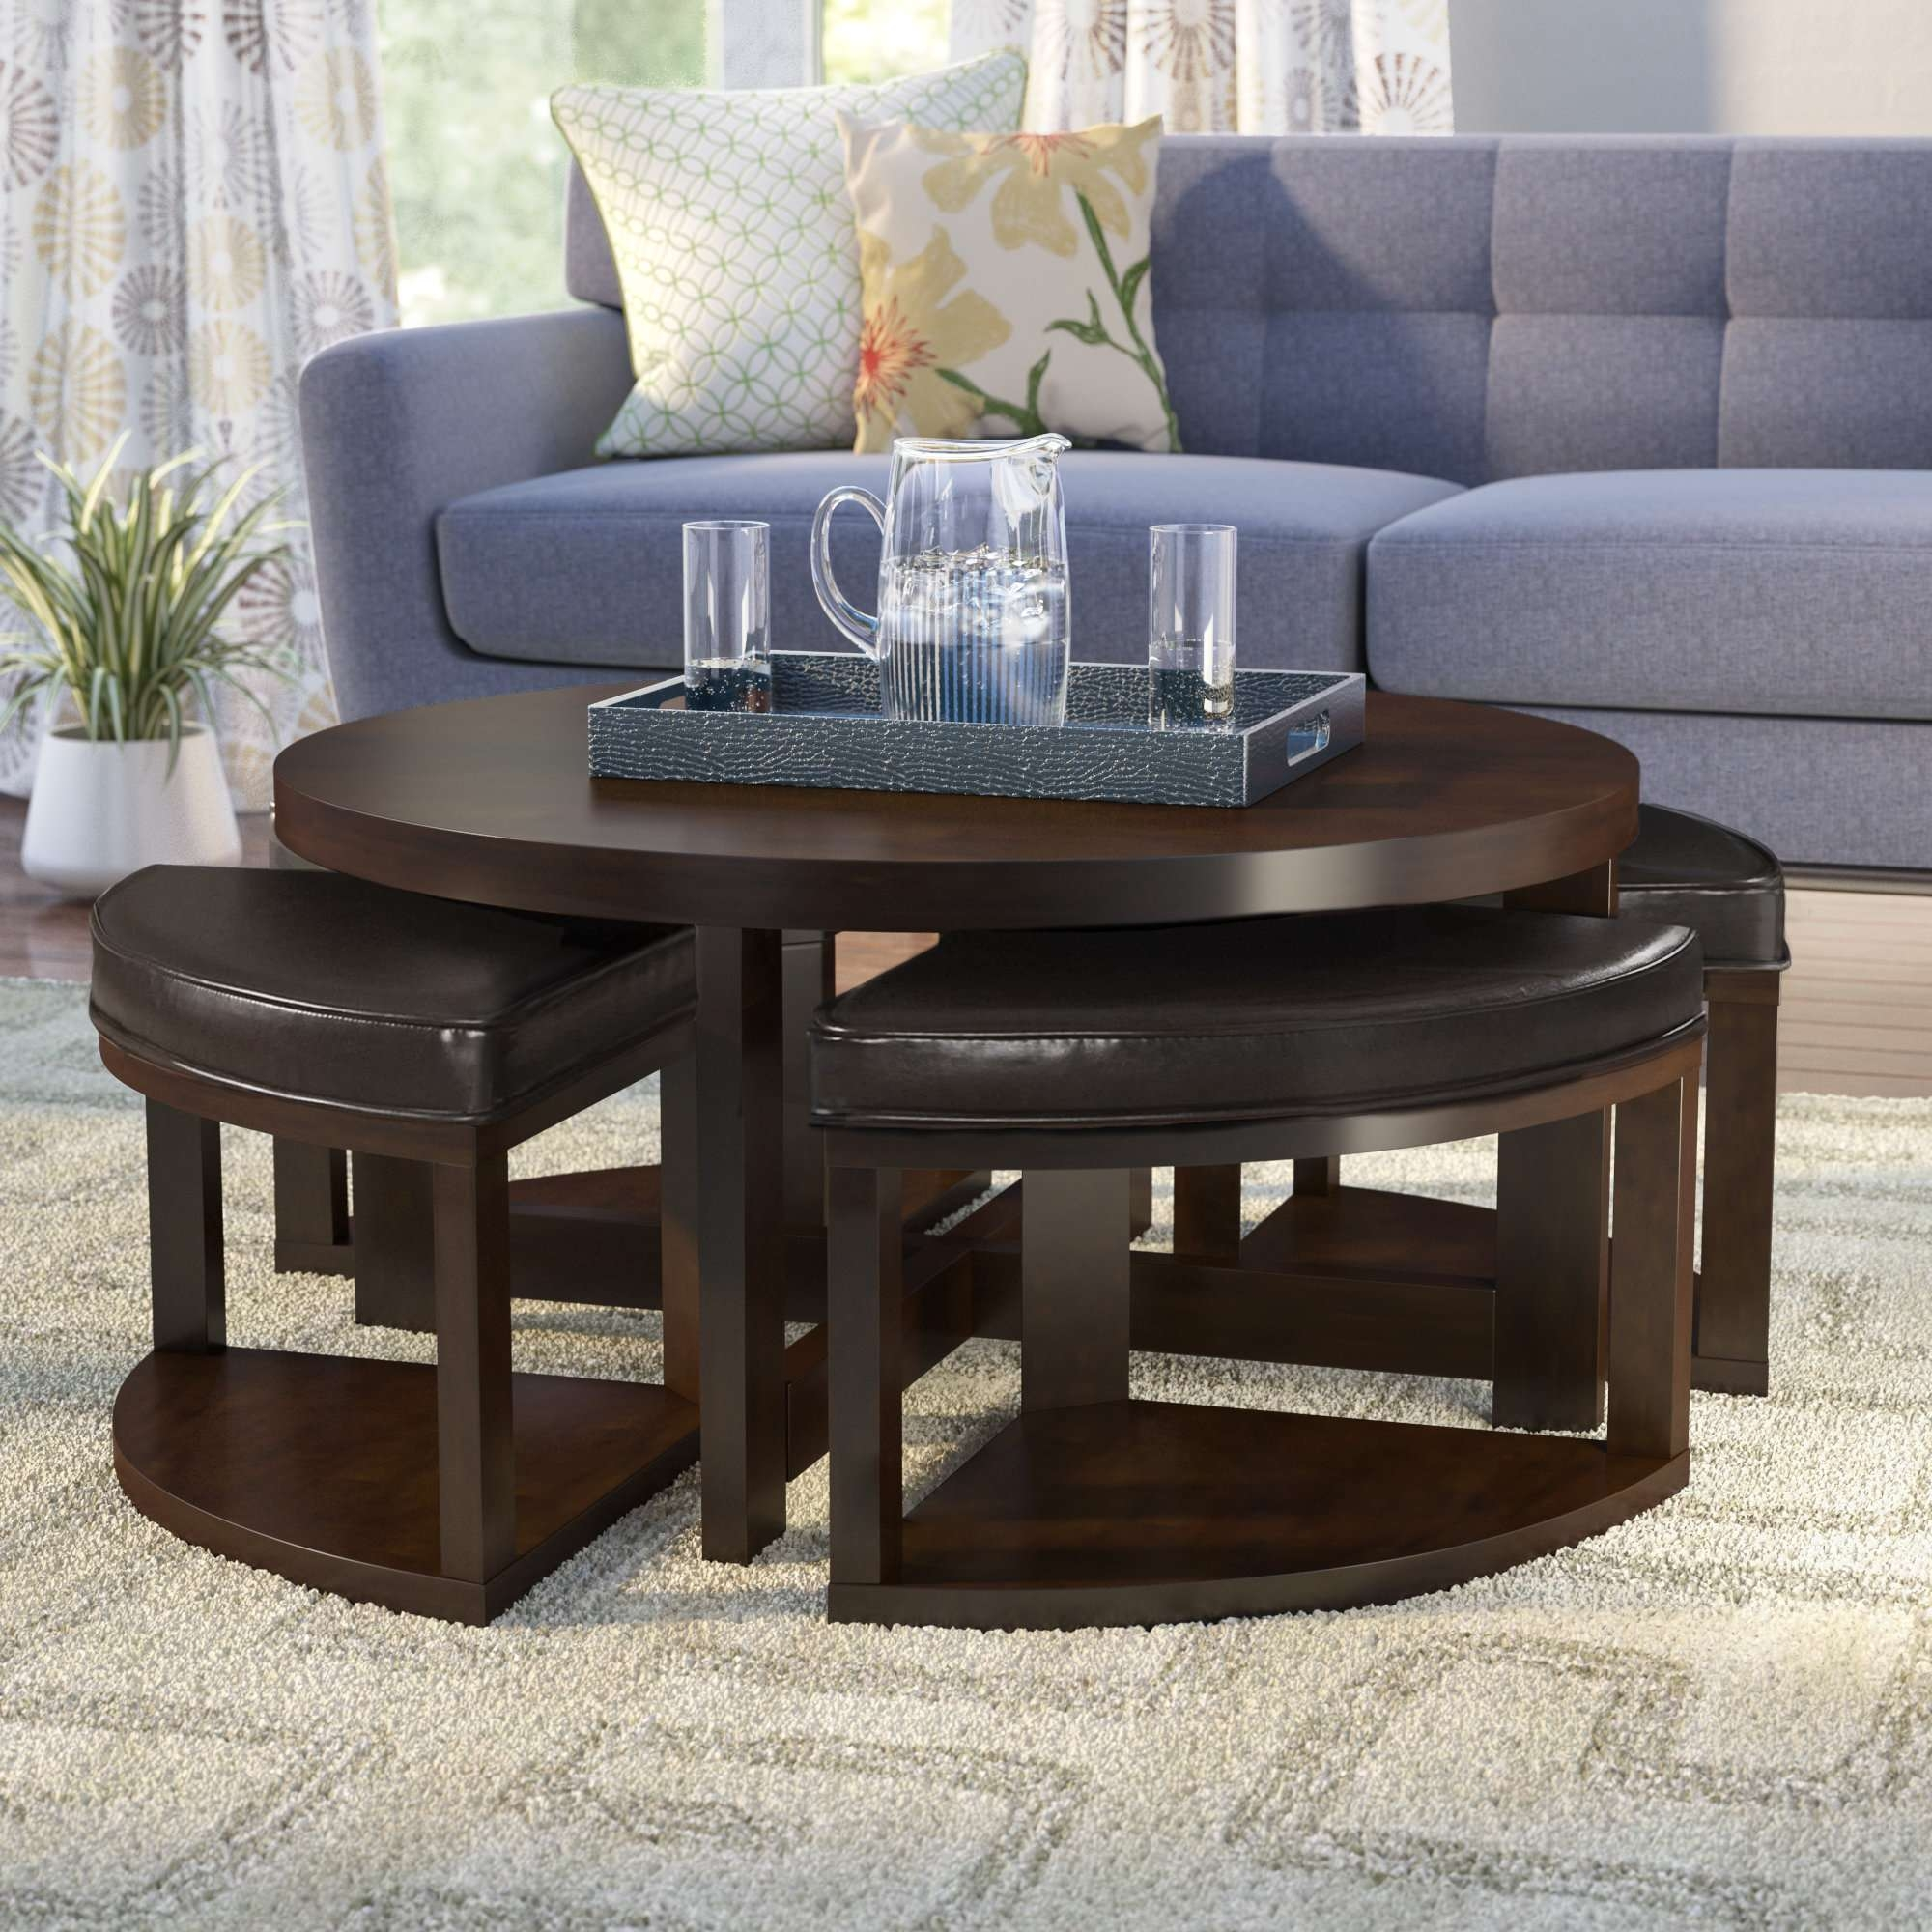 Most Popular Coffee Tables With Nesting Stools Throughout Latitude Run Swineford Coffee Table With 4 Nested Stool & Reviews (View 12 of 20)